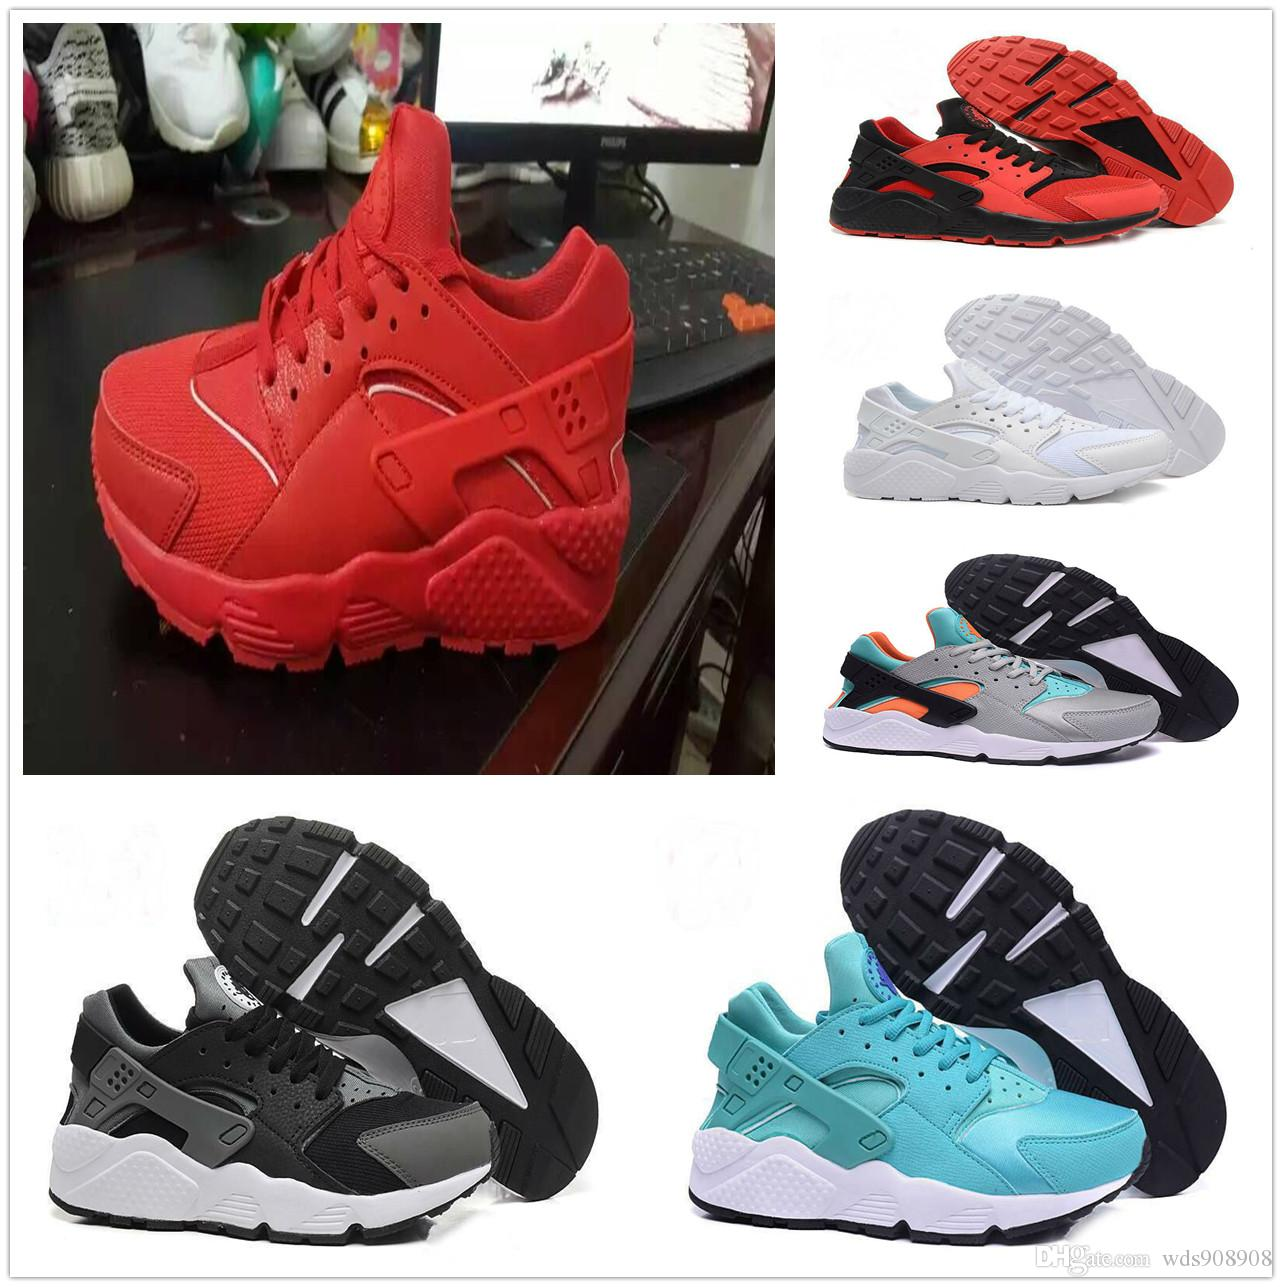 0057bc5cd63a Cheap Newest Air Huarache 4 IV Ultra Reflect Running Shoes For Men Women Leather  Mens Huraches Sports Trainers Sneakers 36-45